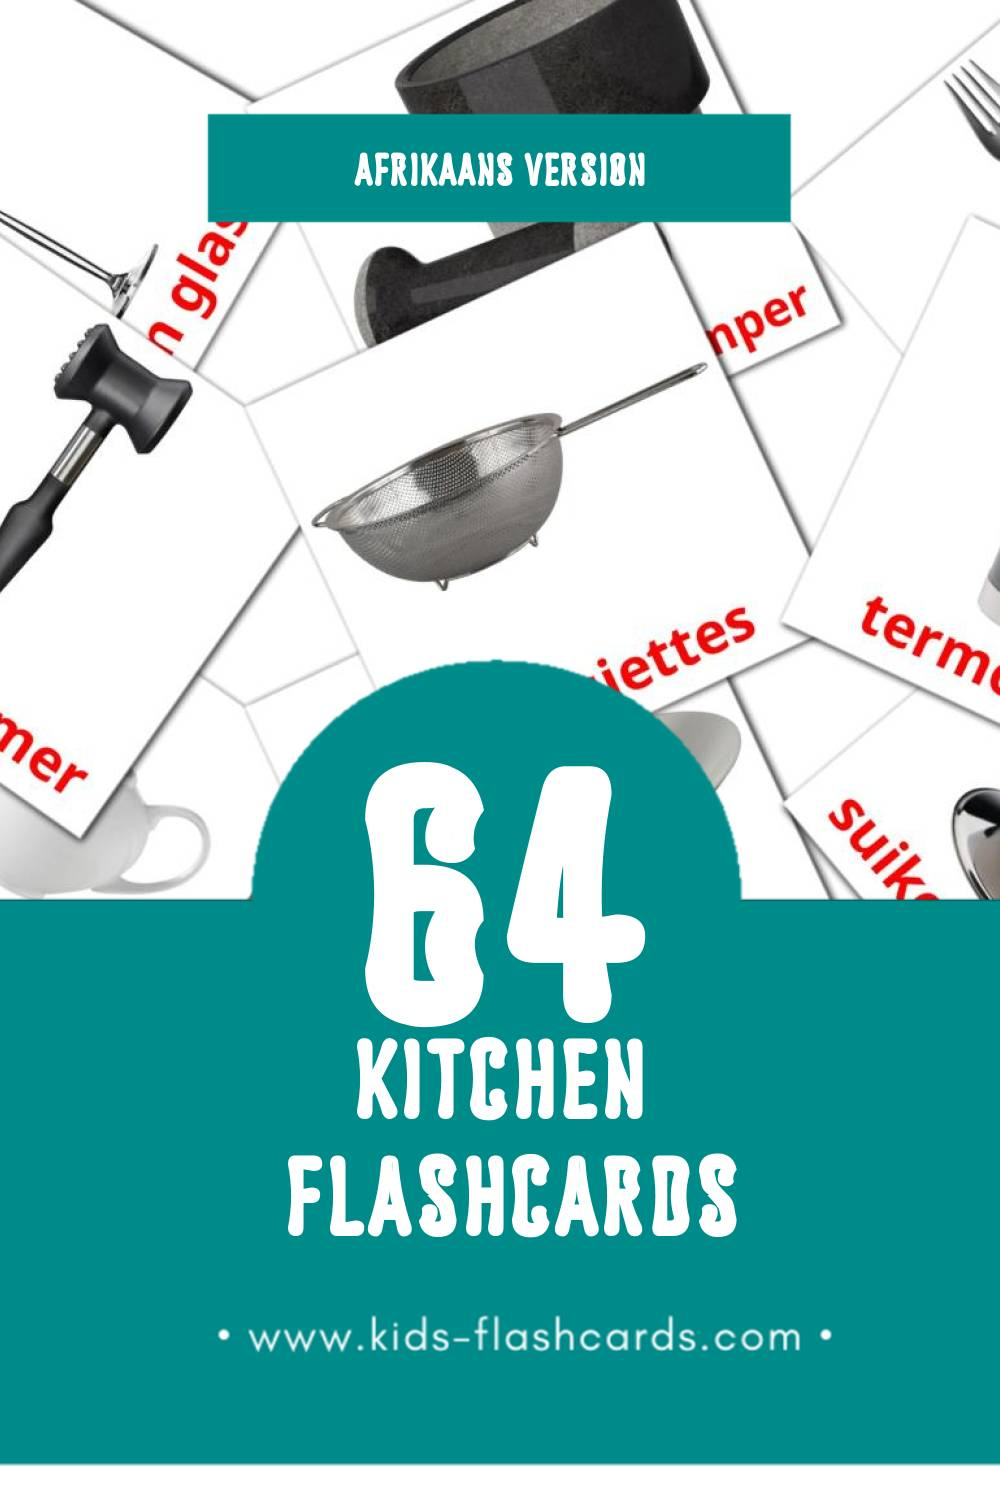 Visual Chin Flashcards for Toddlers (29 cards in Afrikaans)